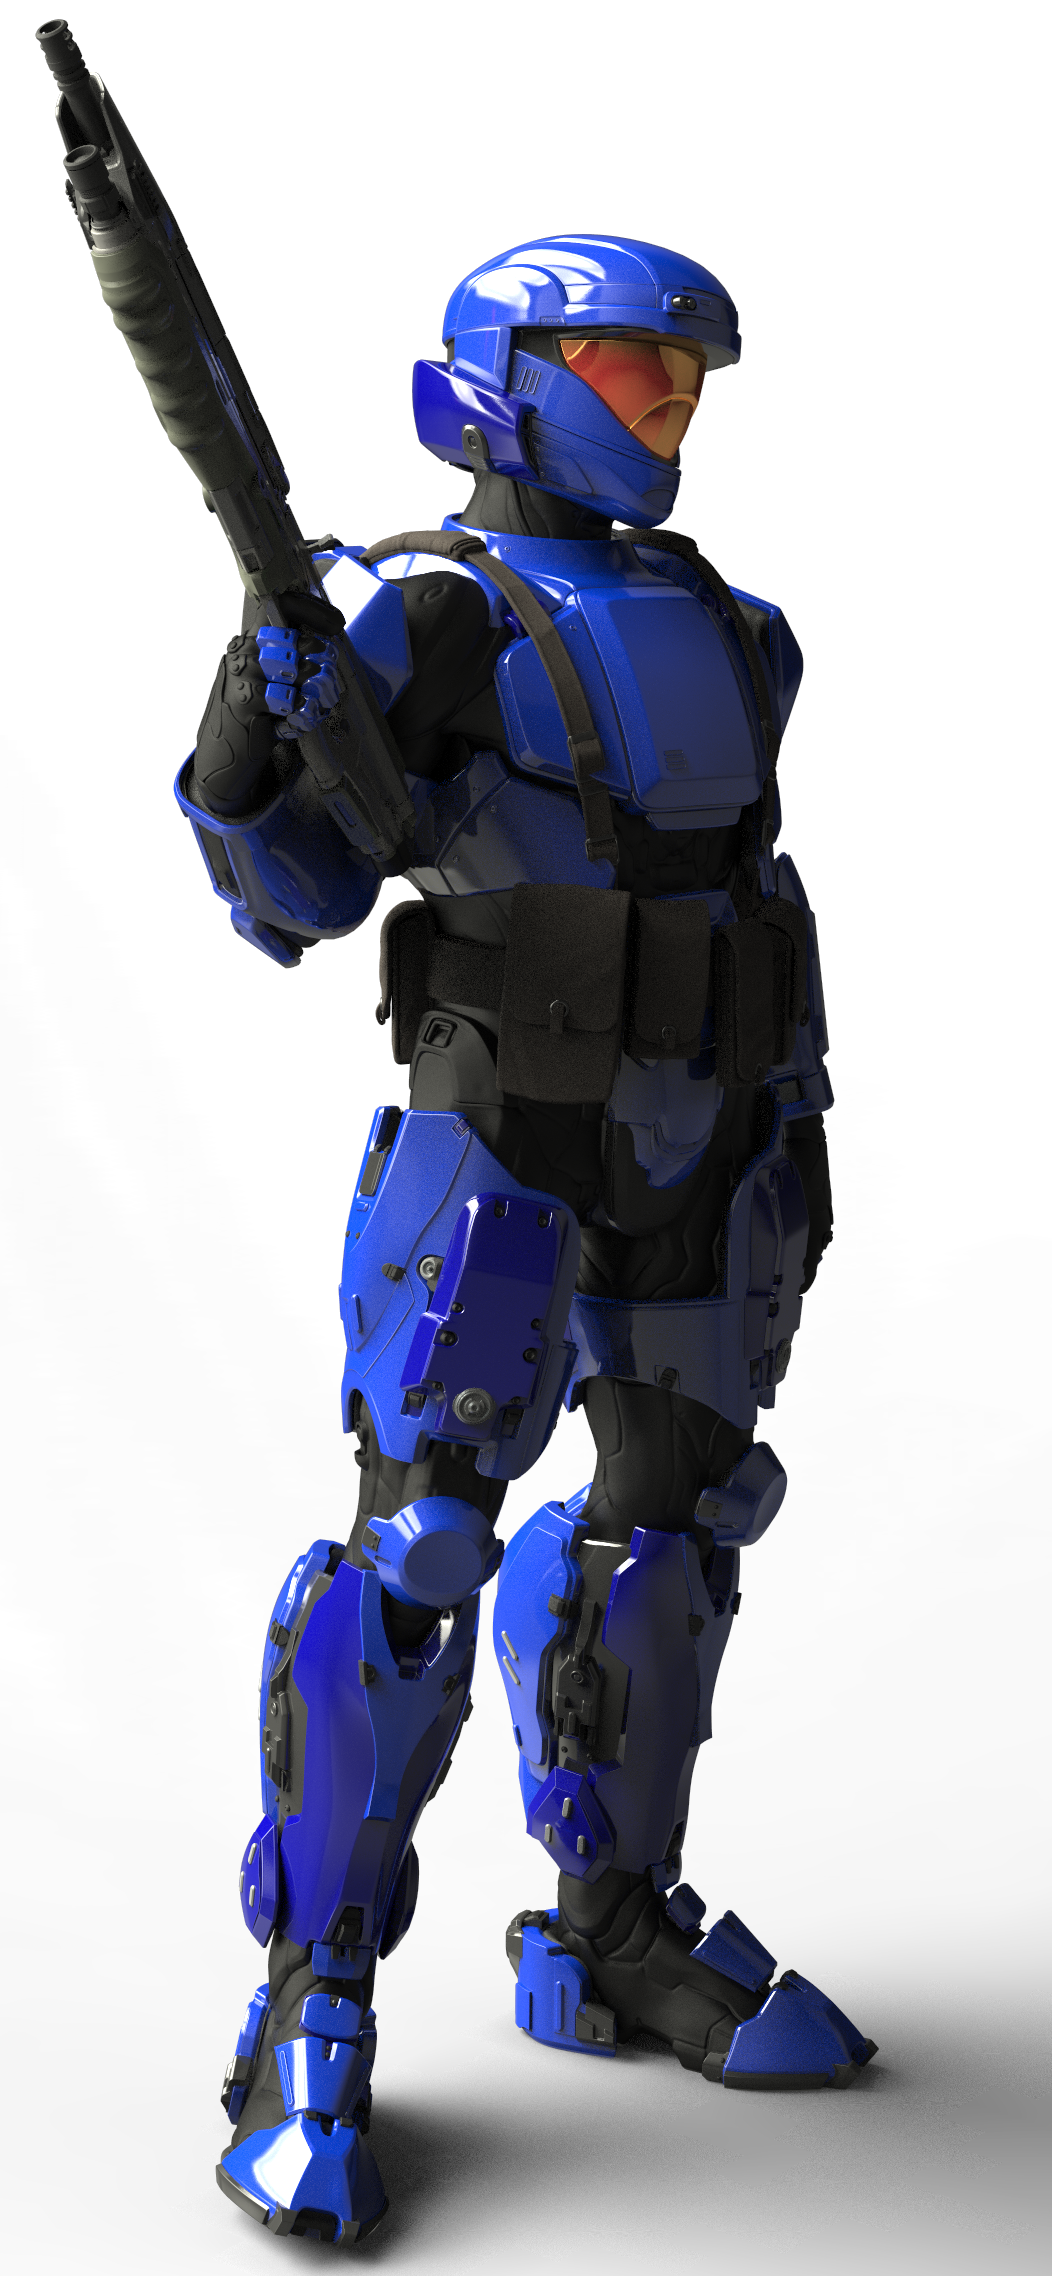 Armor Design What Happened Halo 5 Guardians Forums Halo